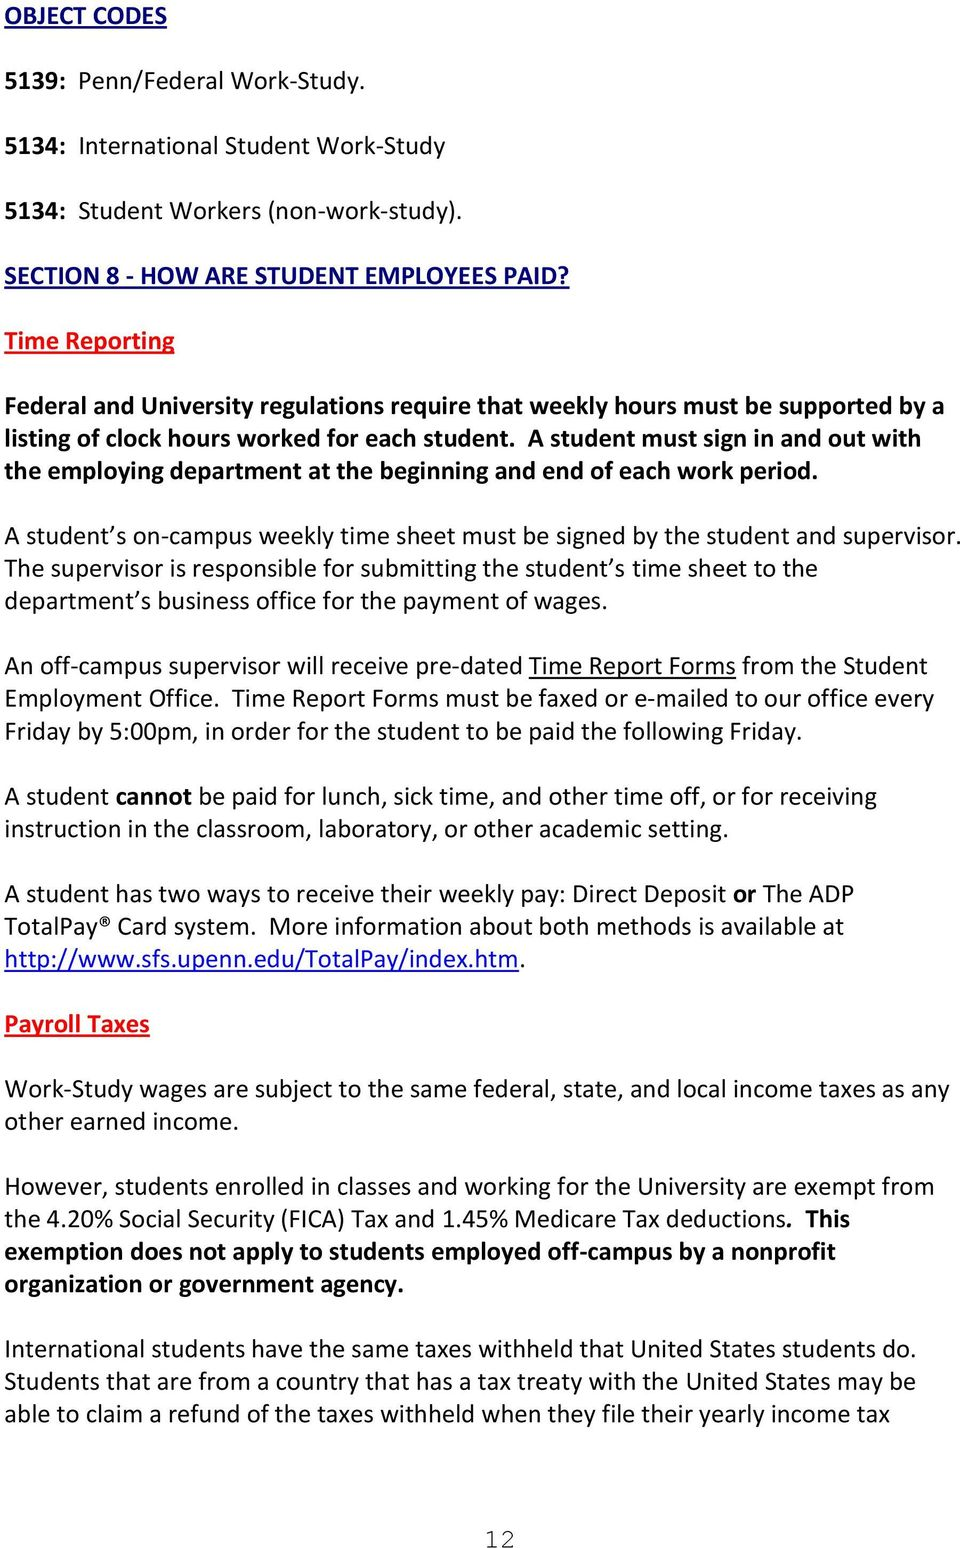 A student must sign in and out with the employing department at the beginning and end of each work period. A student s on-campus weekly time sheet must be signed by the student and supervisor.